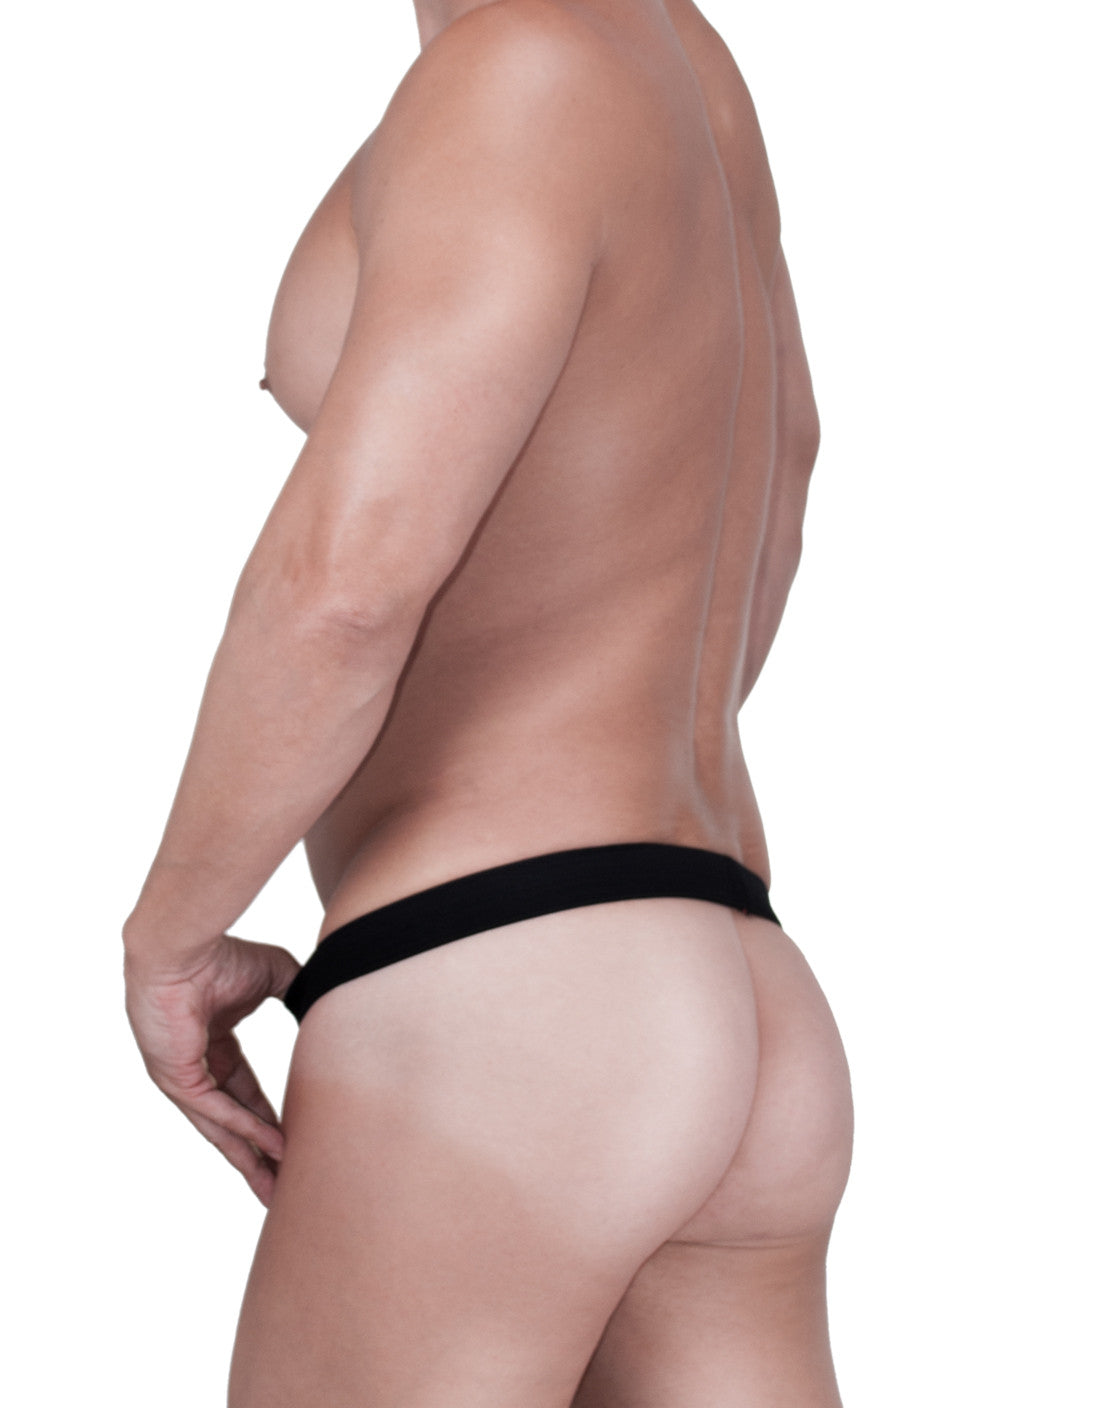 WildmanT Raw Strapless Mesh Jock with C-ring Loop and Duraband Black - Big Penis Underwear, WildmanT - WildmanT